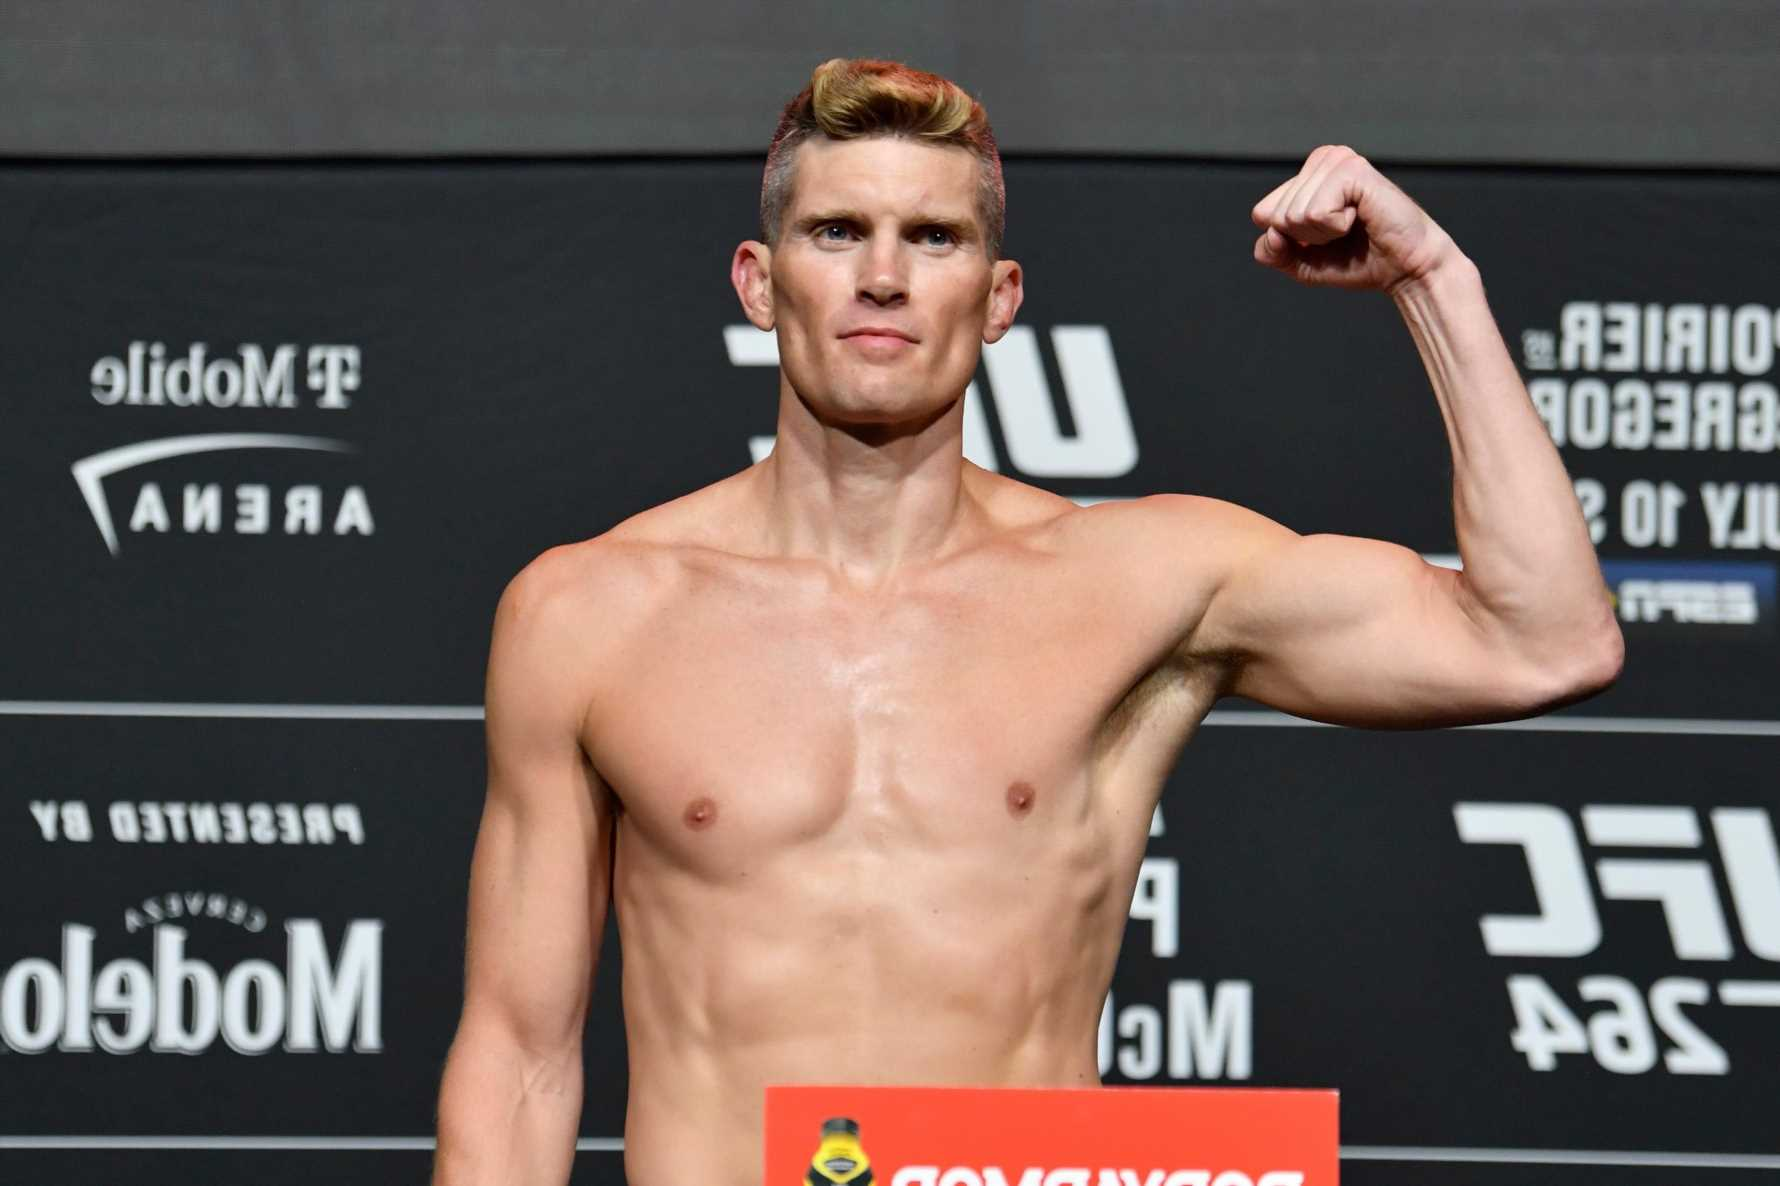 Stephen 'Wonderboy' Thompson reveals he 'projectile vomited in front of entire roster' after weigh-in for UFC 264 fight